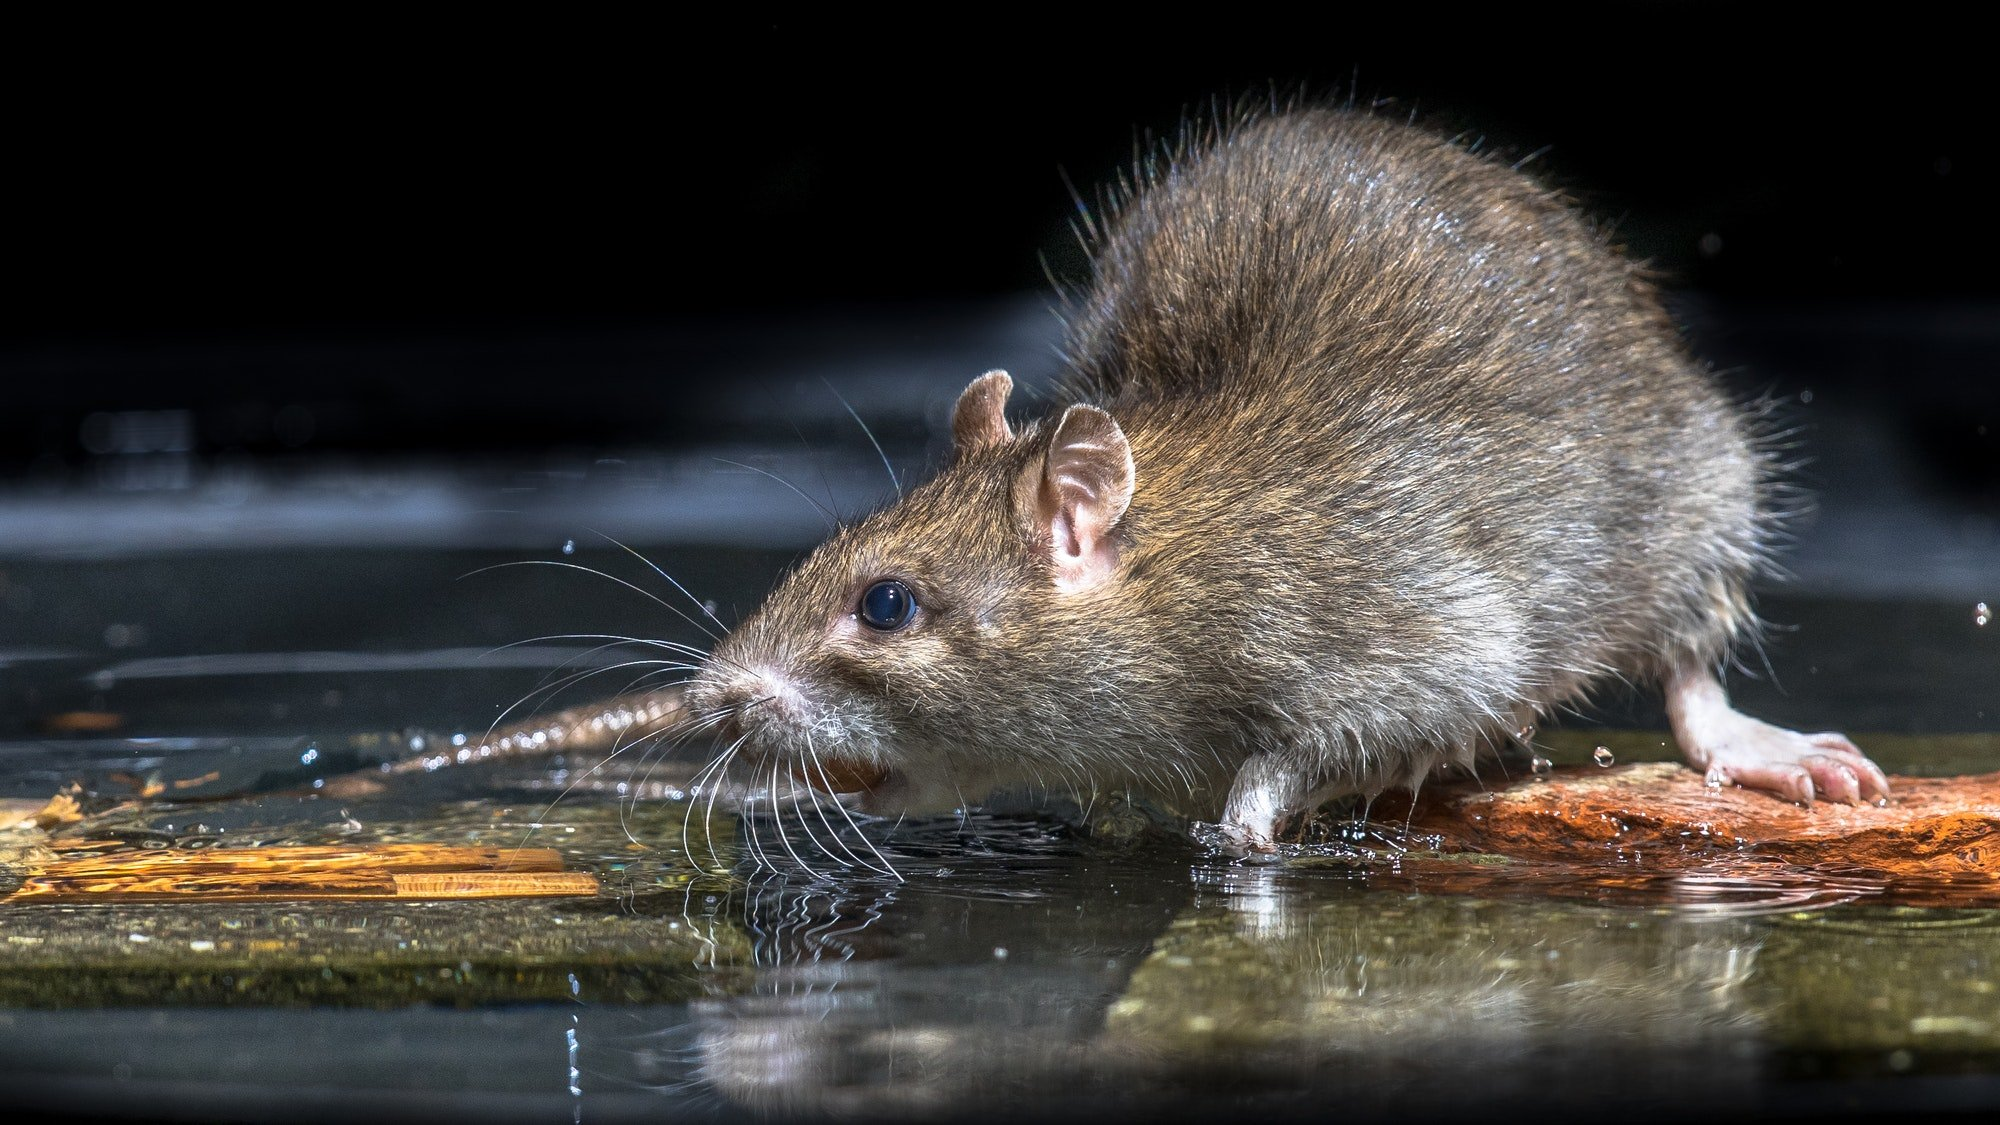 Close up of Wild brown rat in water